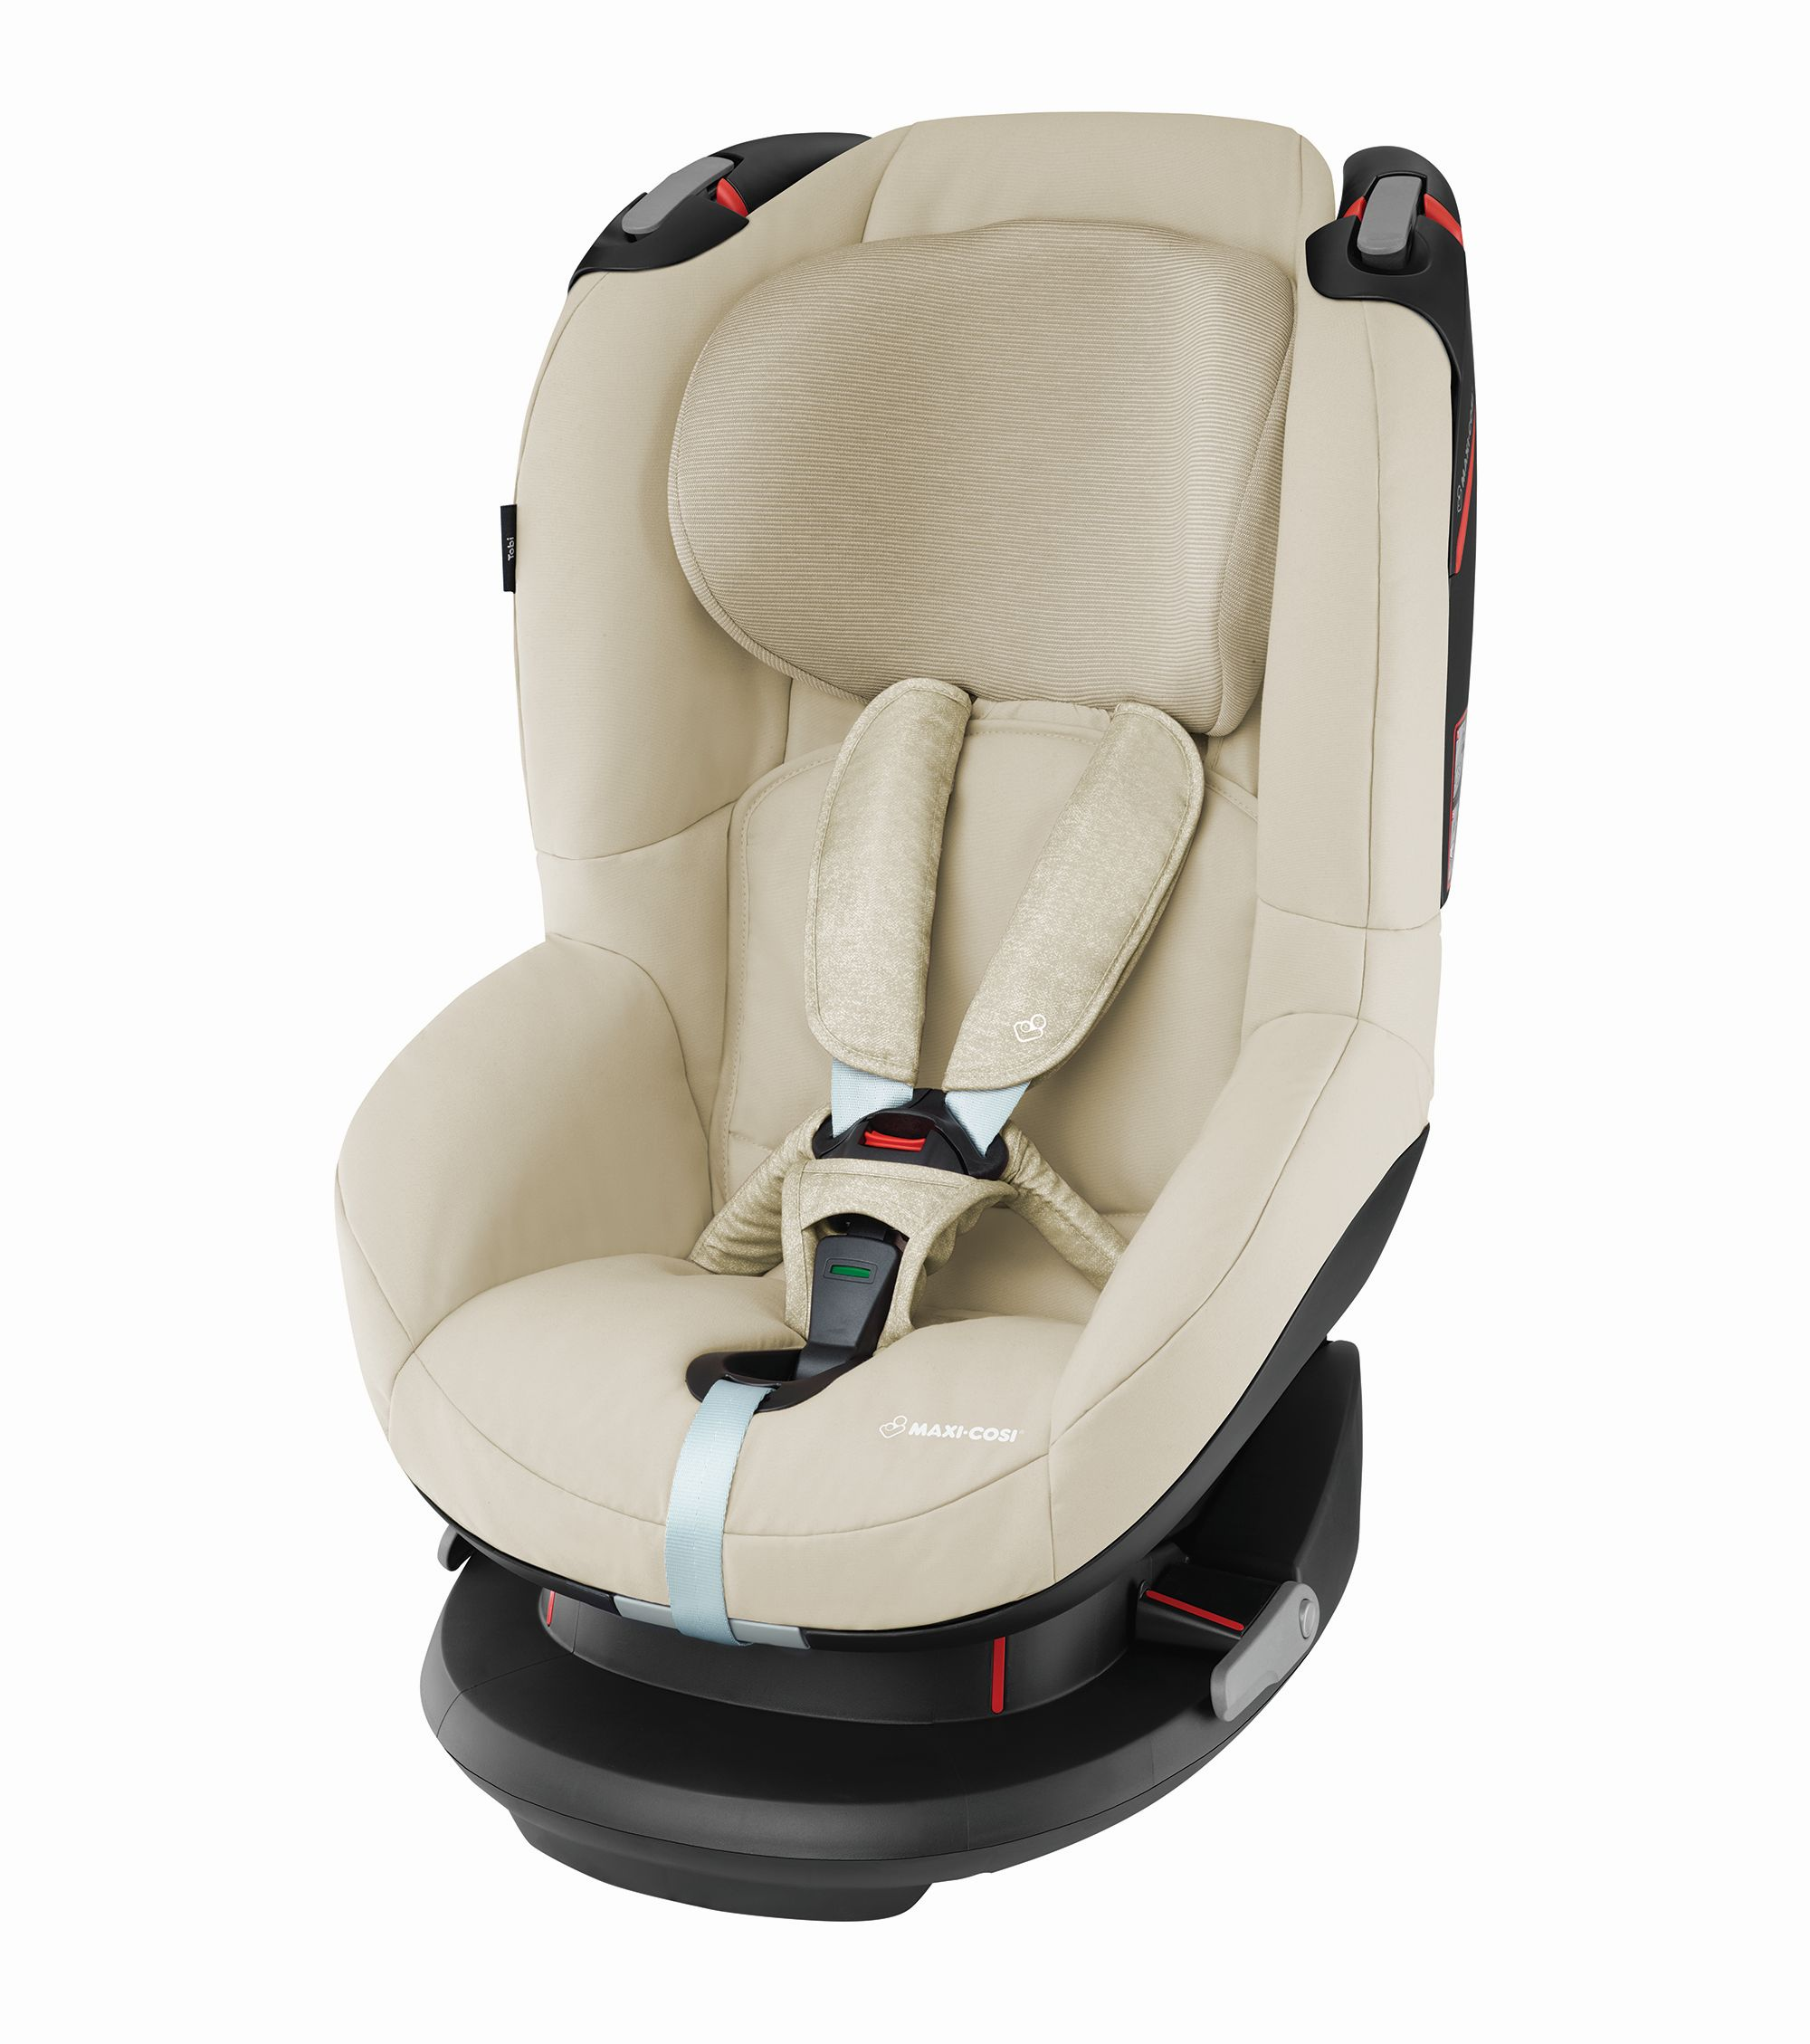 Maxi cosi child car seat tobi 2018 nomad sand buy at for Maxi cosi housse